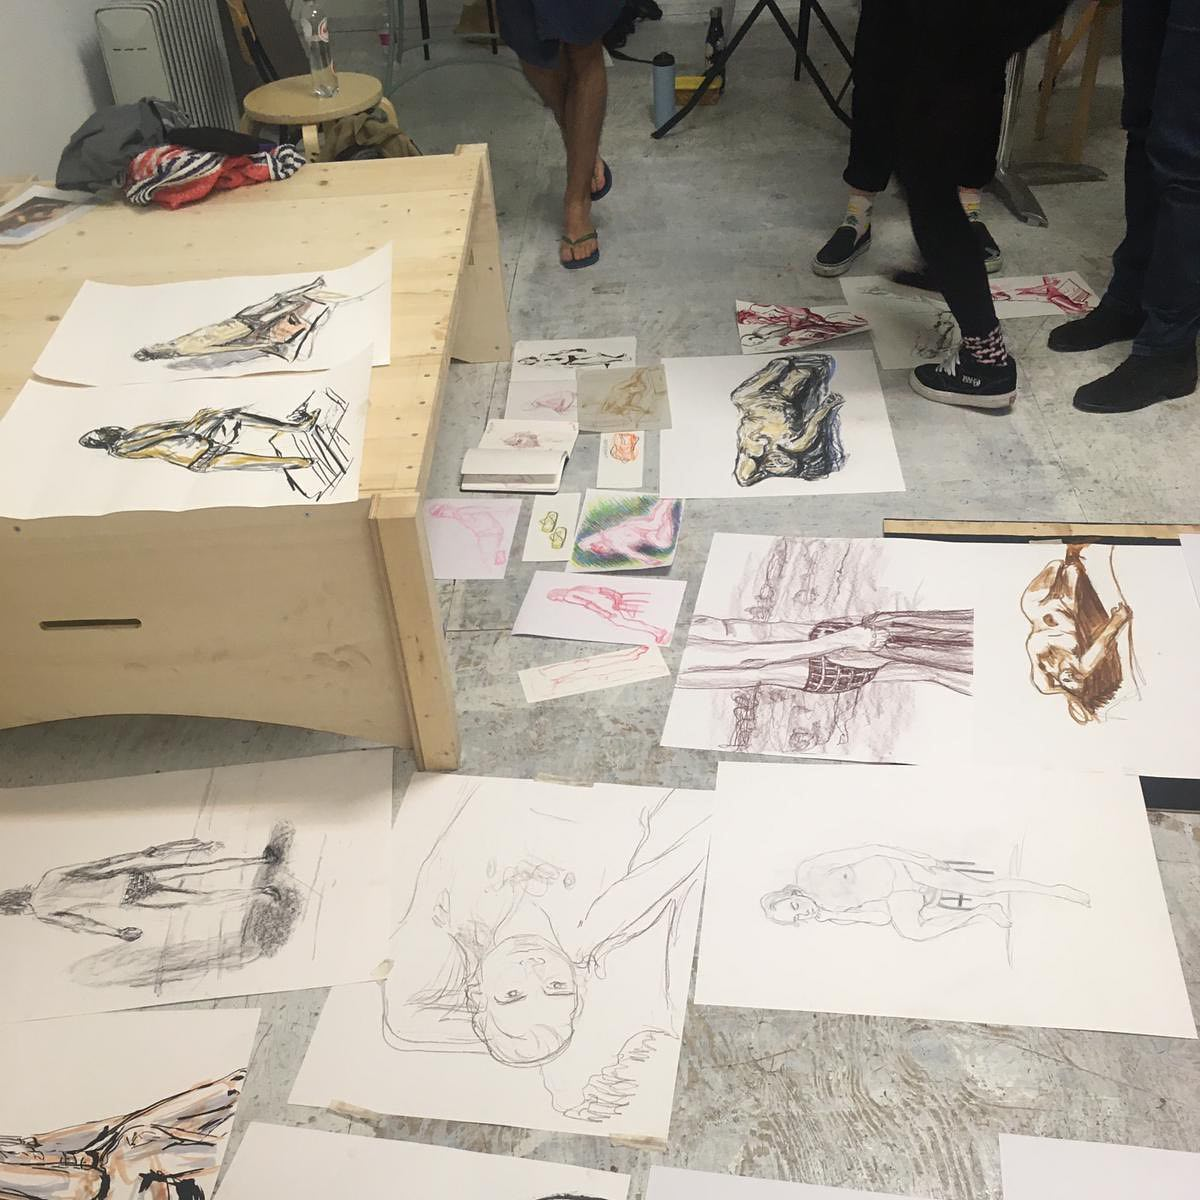 We had another Figure Drawing session yesterday, it was a great night! Lovely group, great model and me just messing arround with different materials, yay!.#figuredrawing #modeltekenen #artmodel #drawing